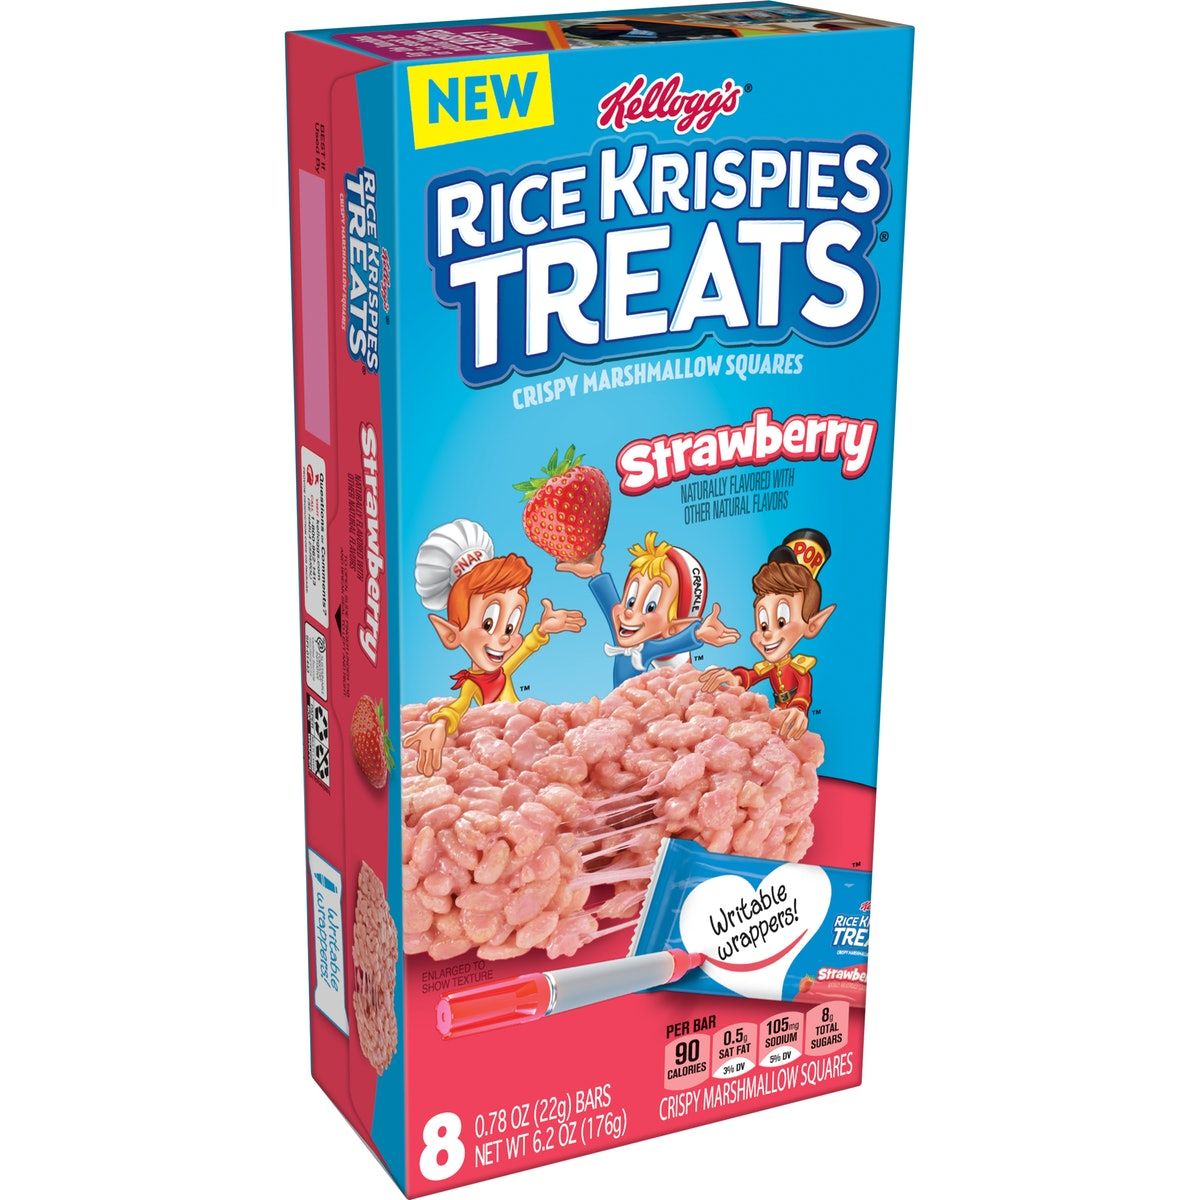 You can buy Strawberry Rice Krispies Treats when they launch in late May 2021.